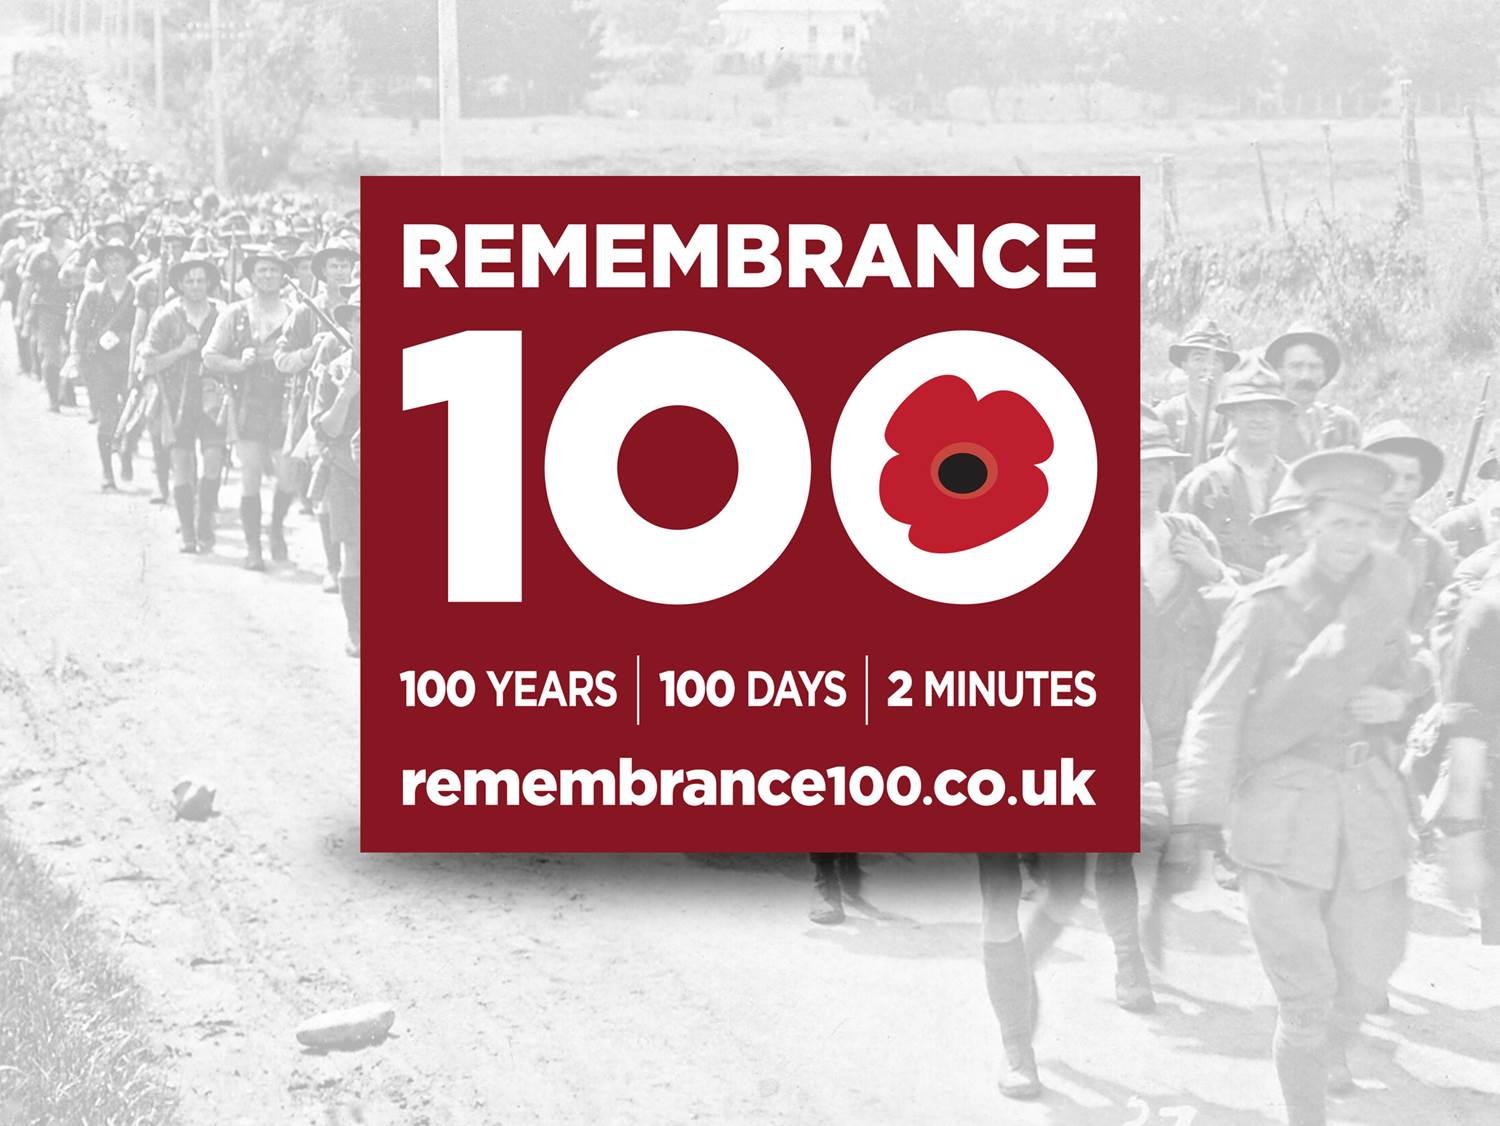 'Remembrance 100'